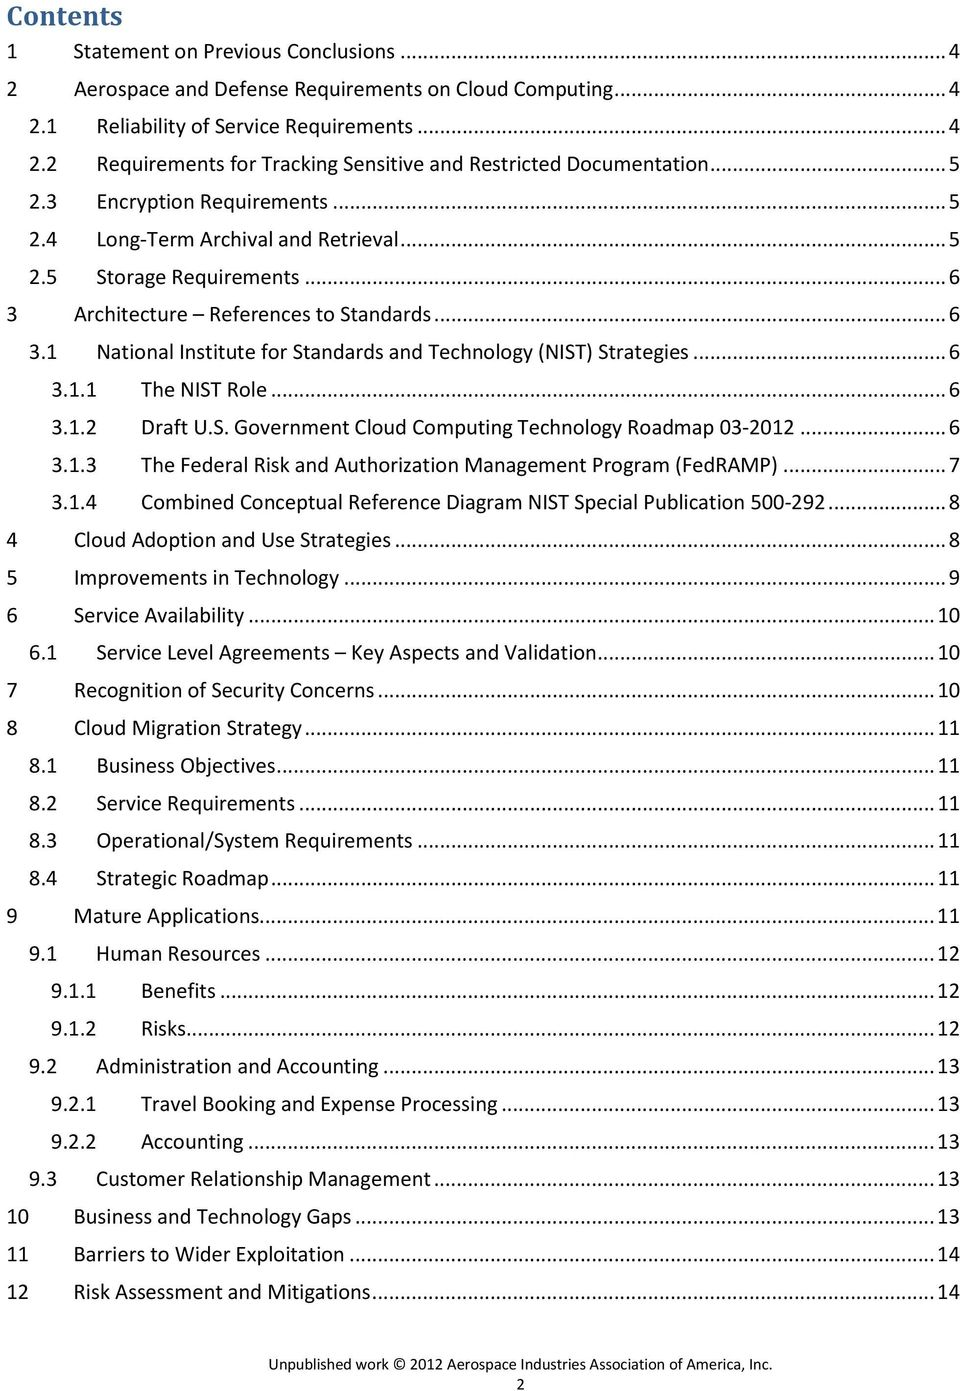 .. 6 3.1.1 The NIST Role... 6 3.1.2 Draft U.S. Government Cloud Computing Technology Roadmap 03-2012... 6 3.1.3 The Federal Risk and Authorization Management Program (FedRAMP)... 7 3.1.4 Combined Conceptual Reference Diagram NIST Special Publication 500-292.